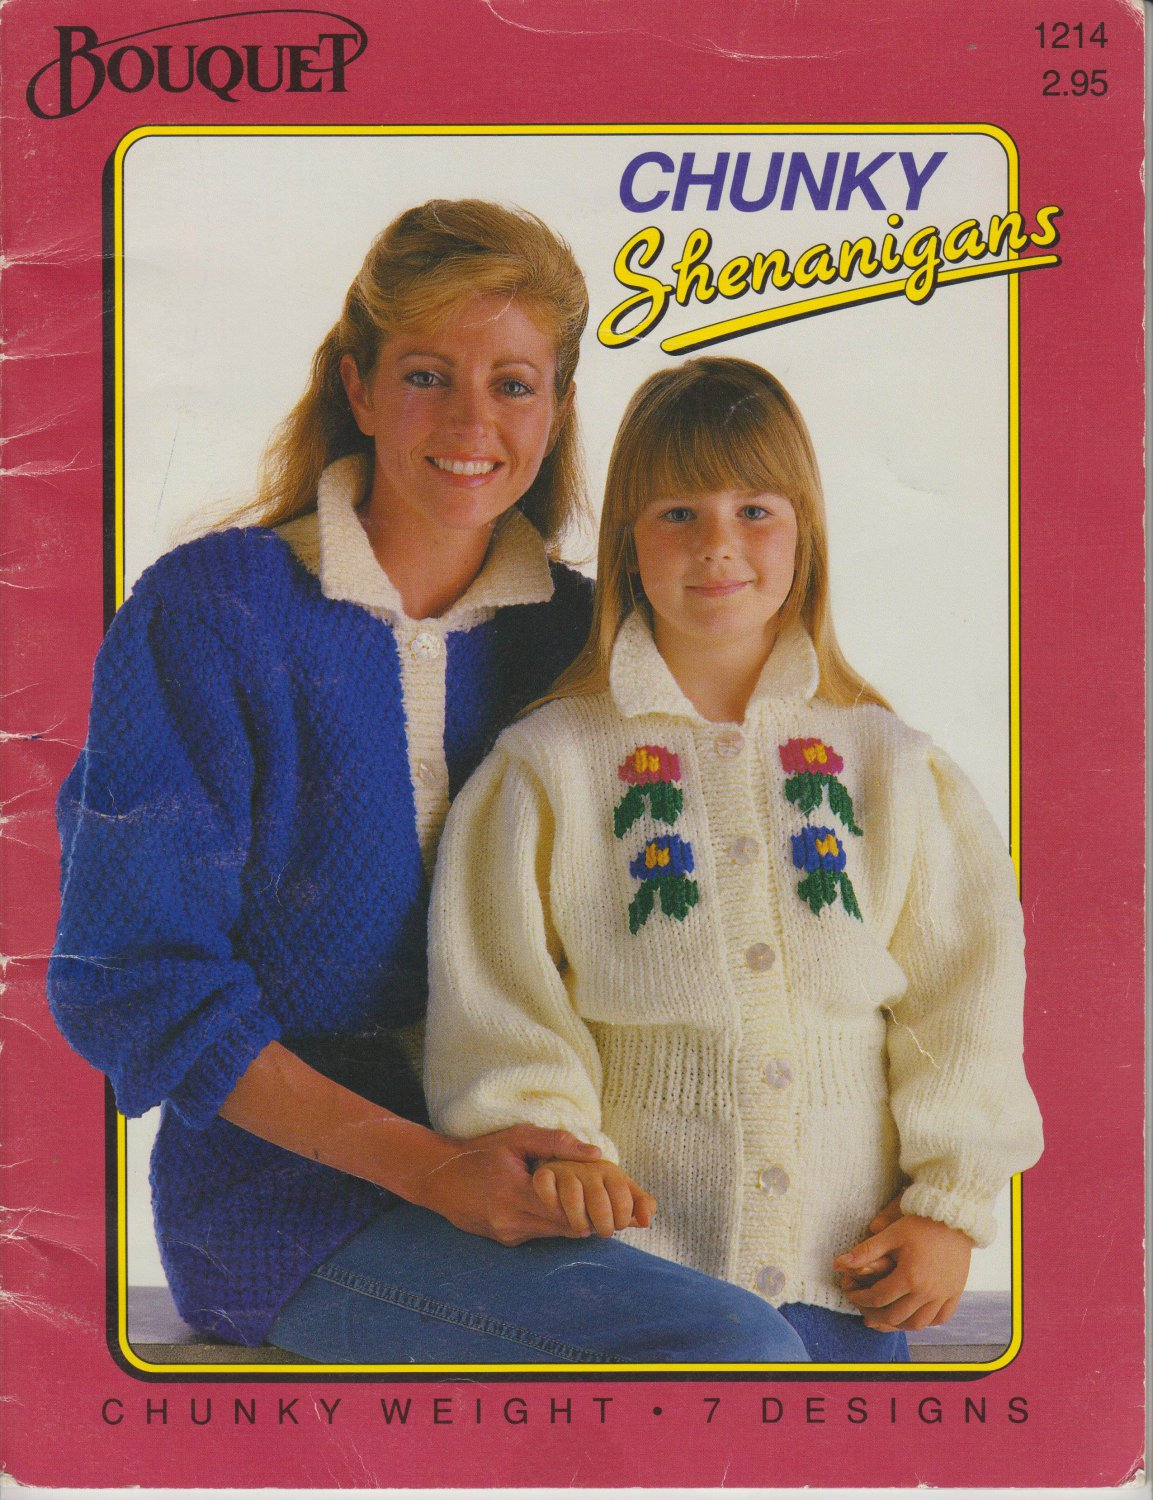 Bouquet Knitting Pattern Book #1214 Chunky Shenanigans Chunky Weight 7 Designs